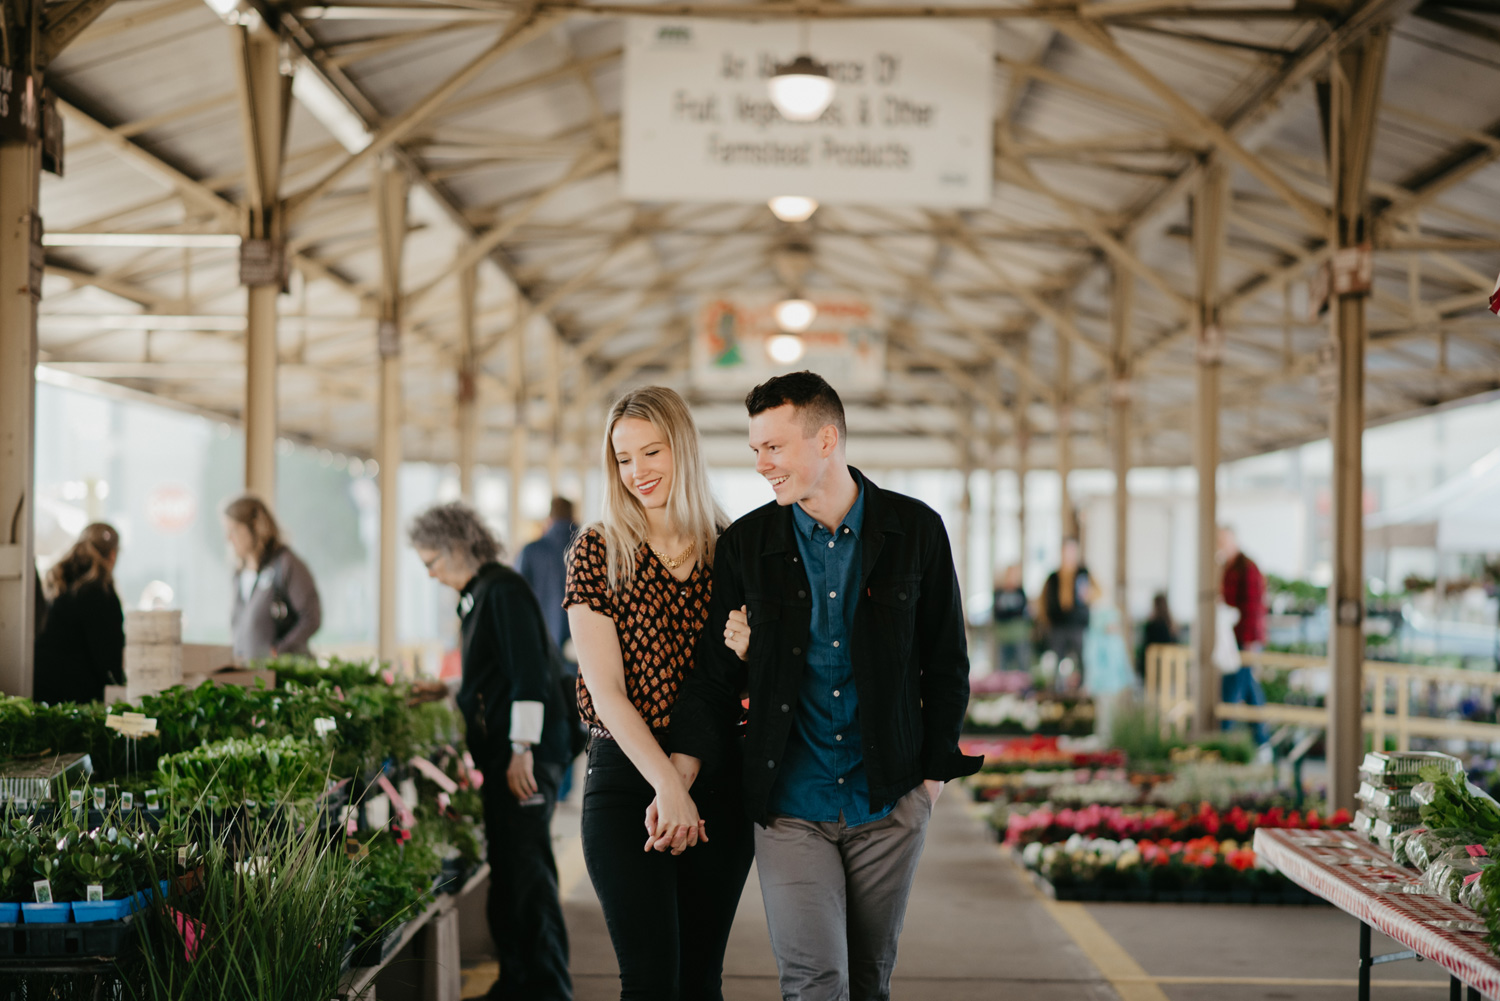 engaged happy couple walking and laughing at farmers market